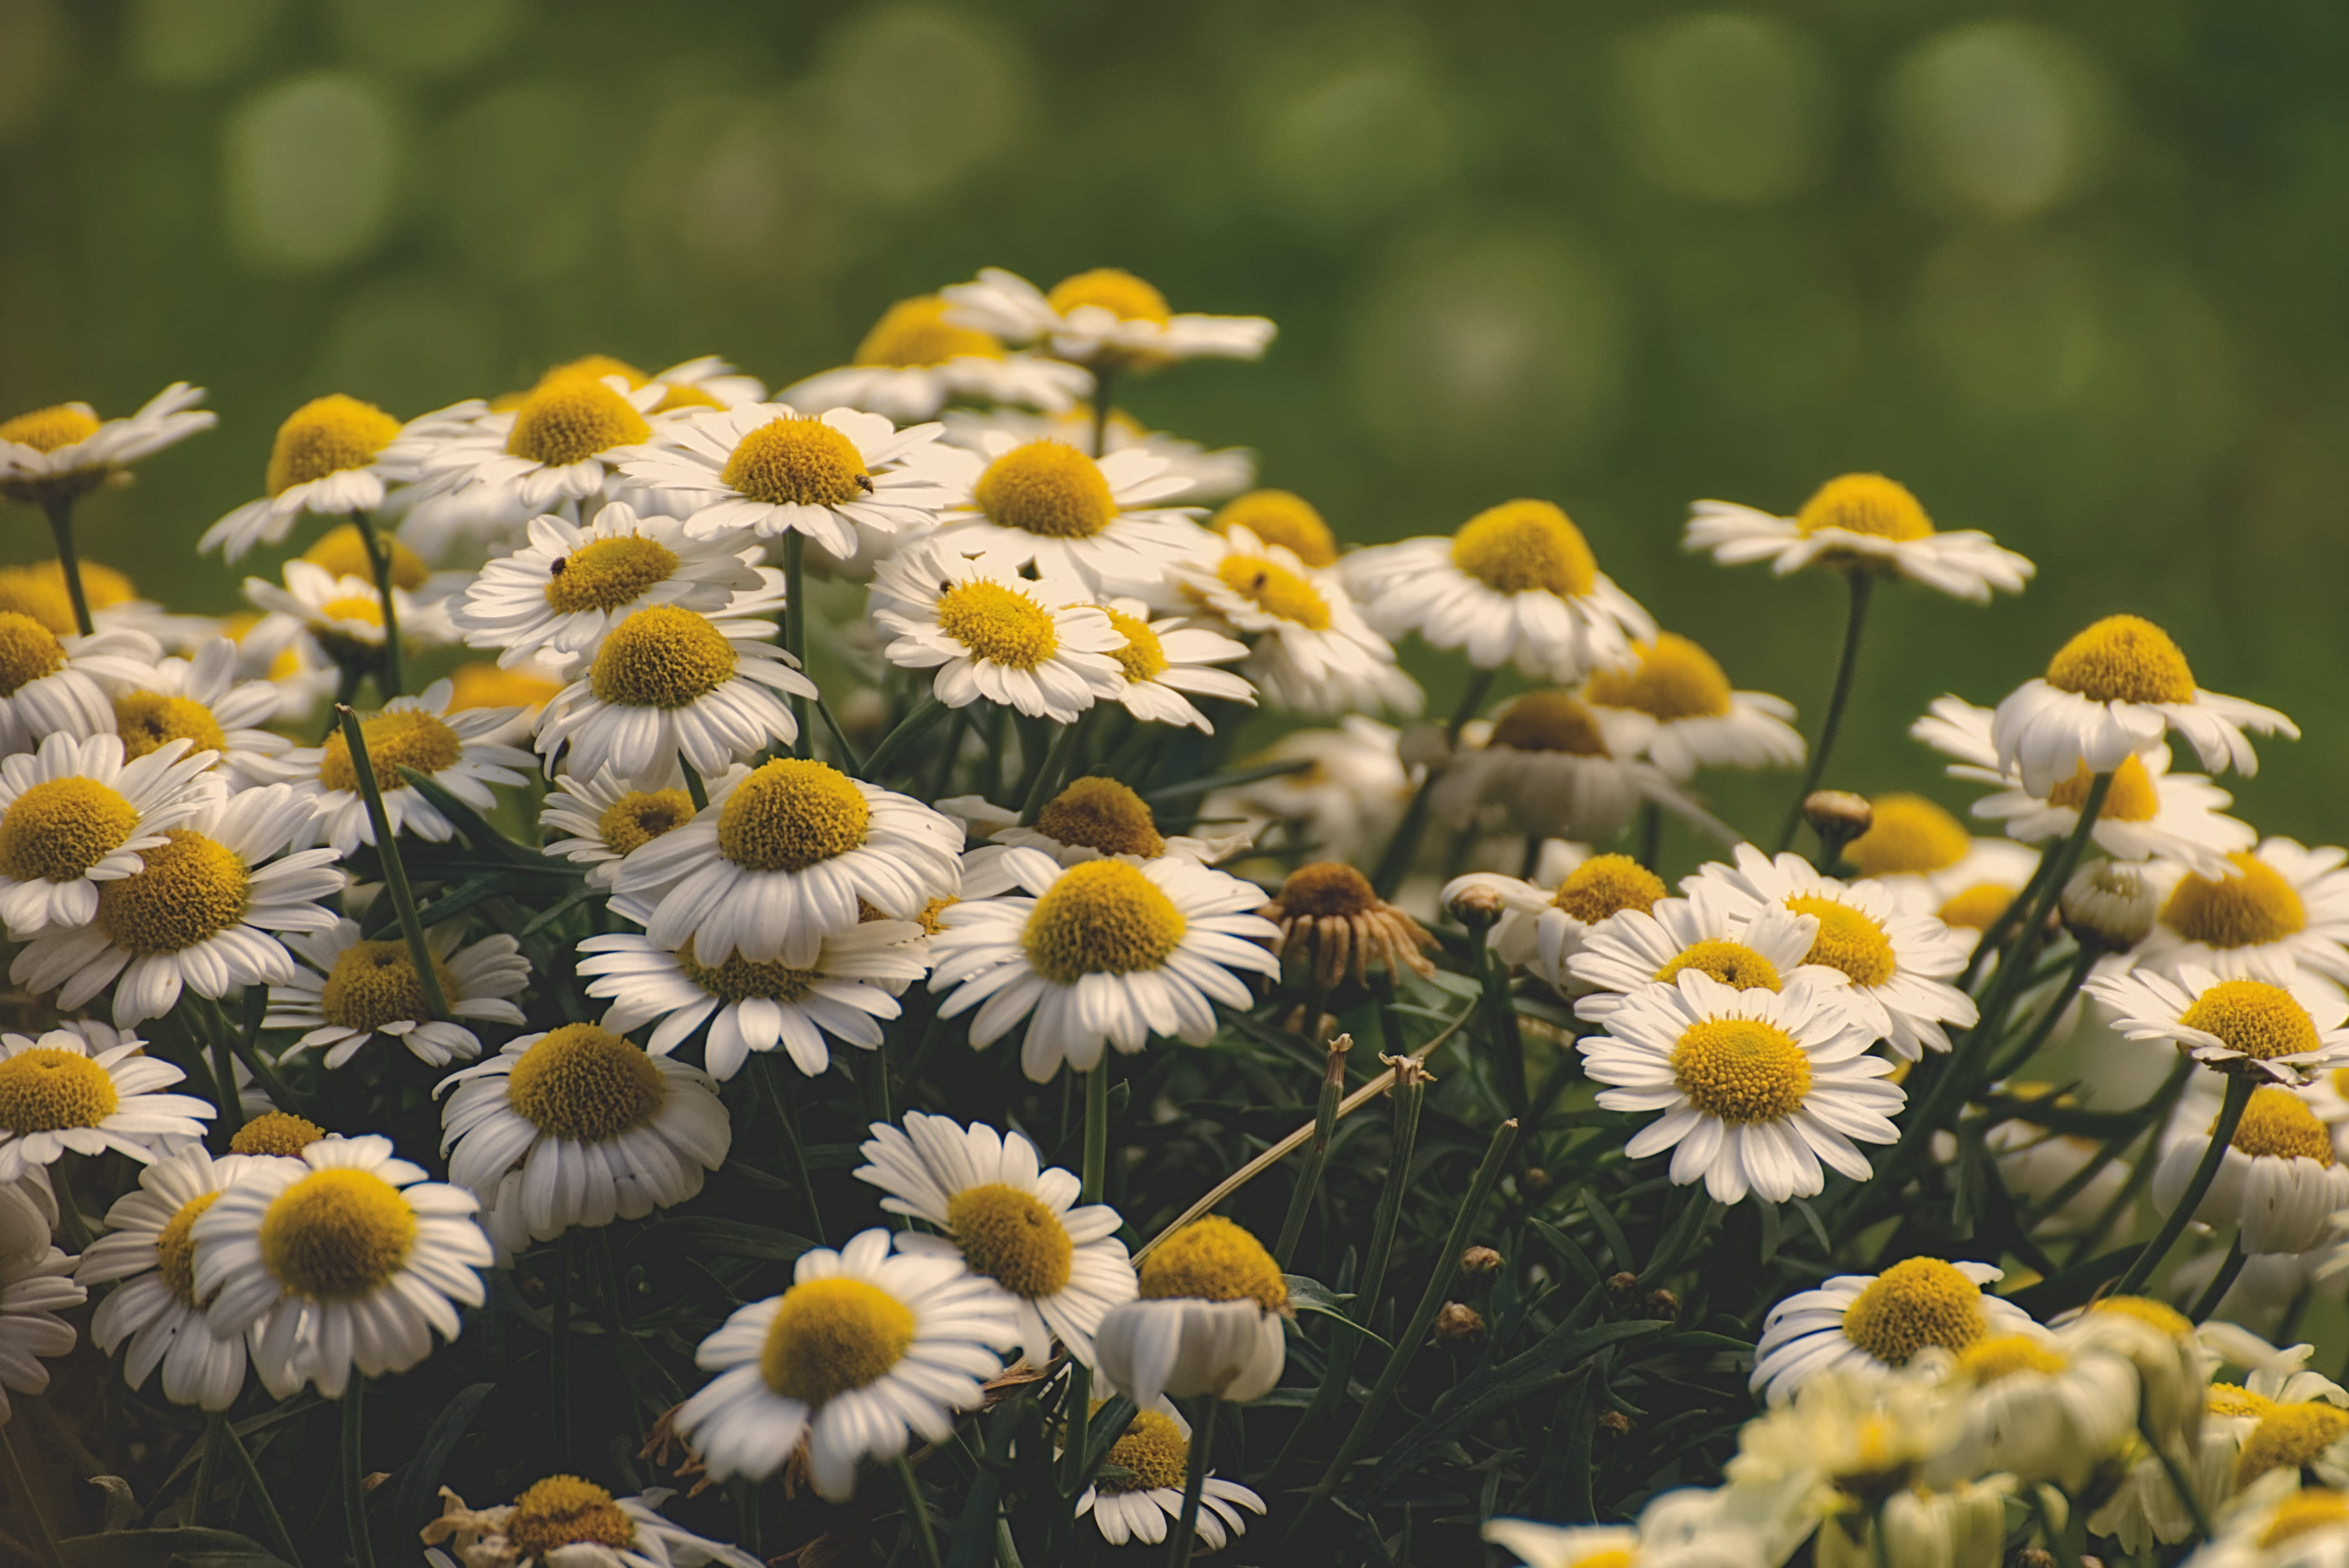 Blooming White and Yellow Daisy Flowers